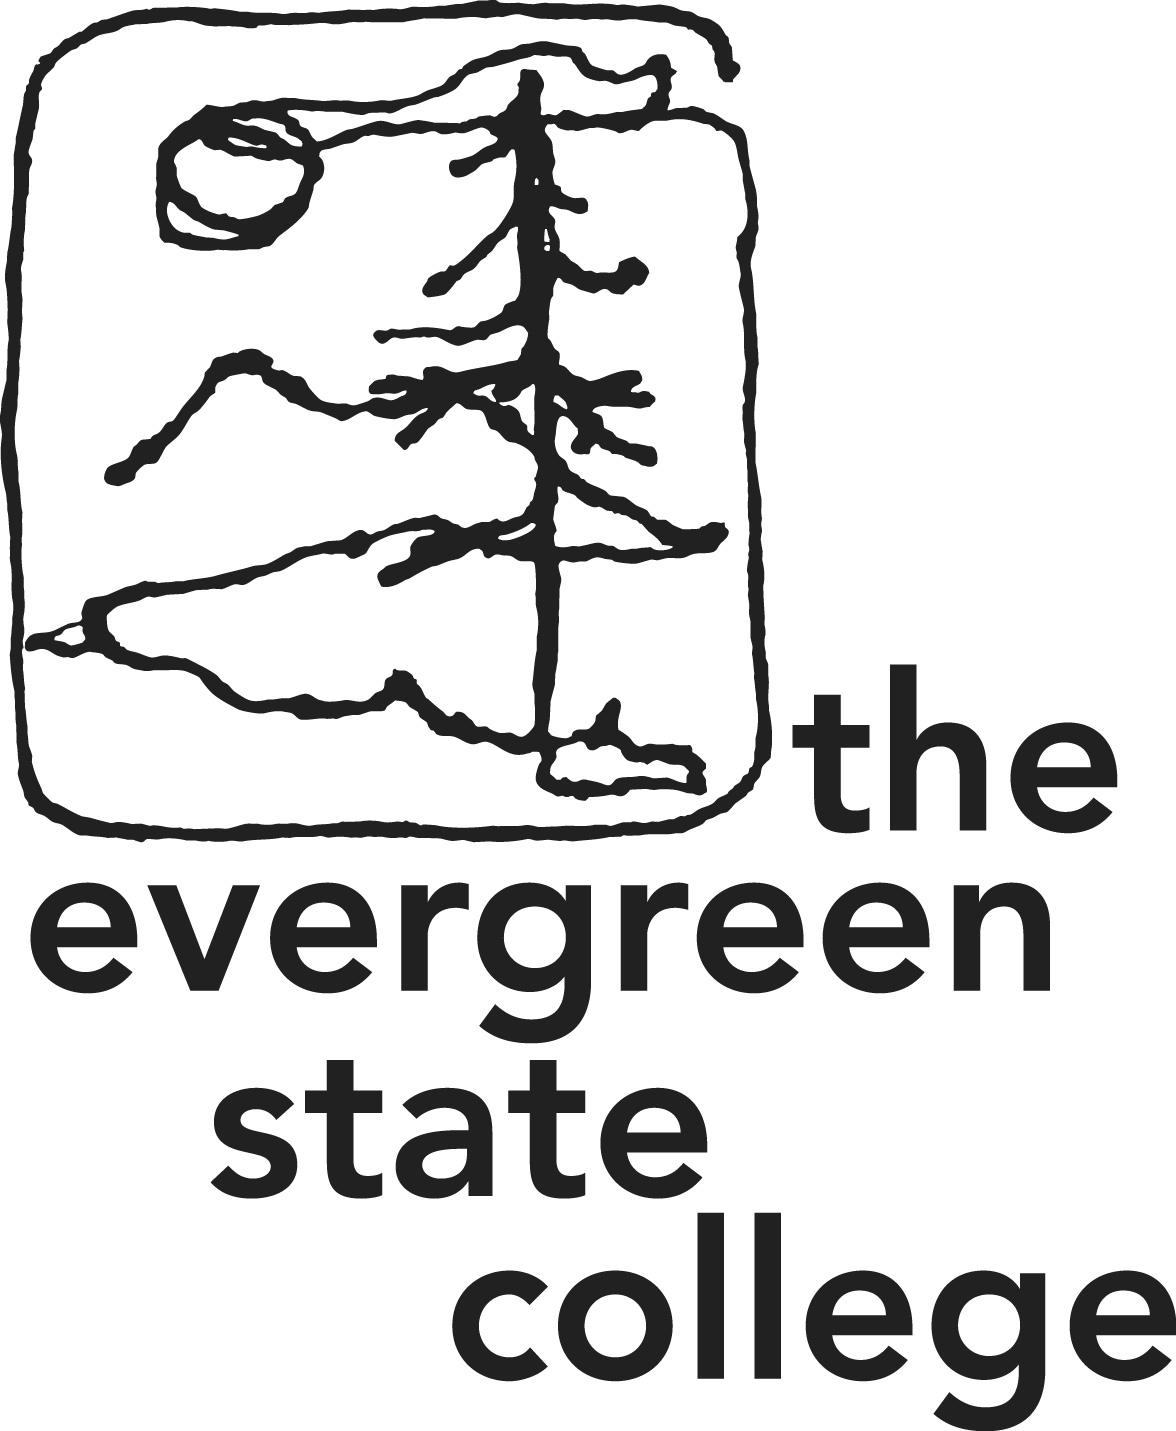 Evergreen state college fire for The evergreen